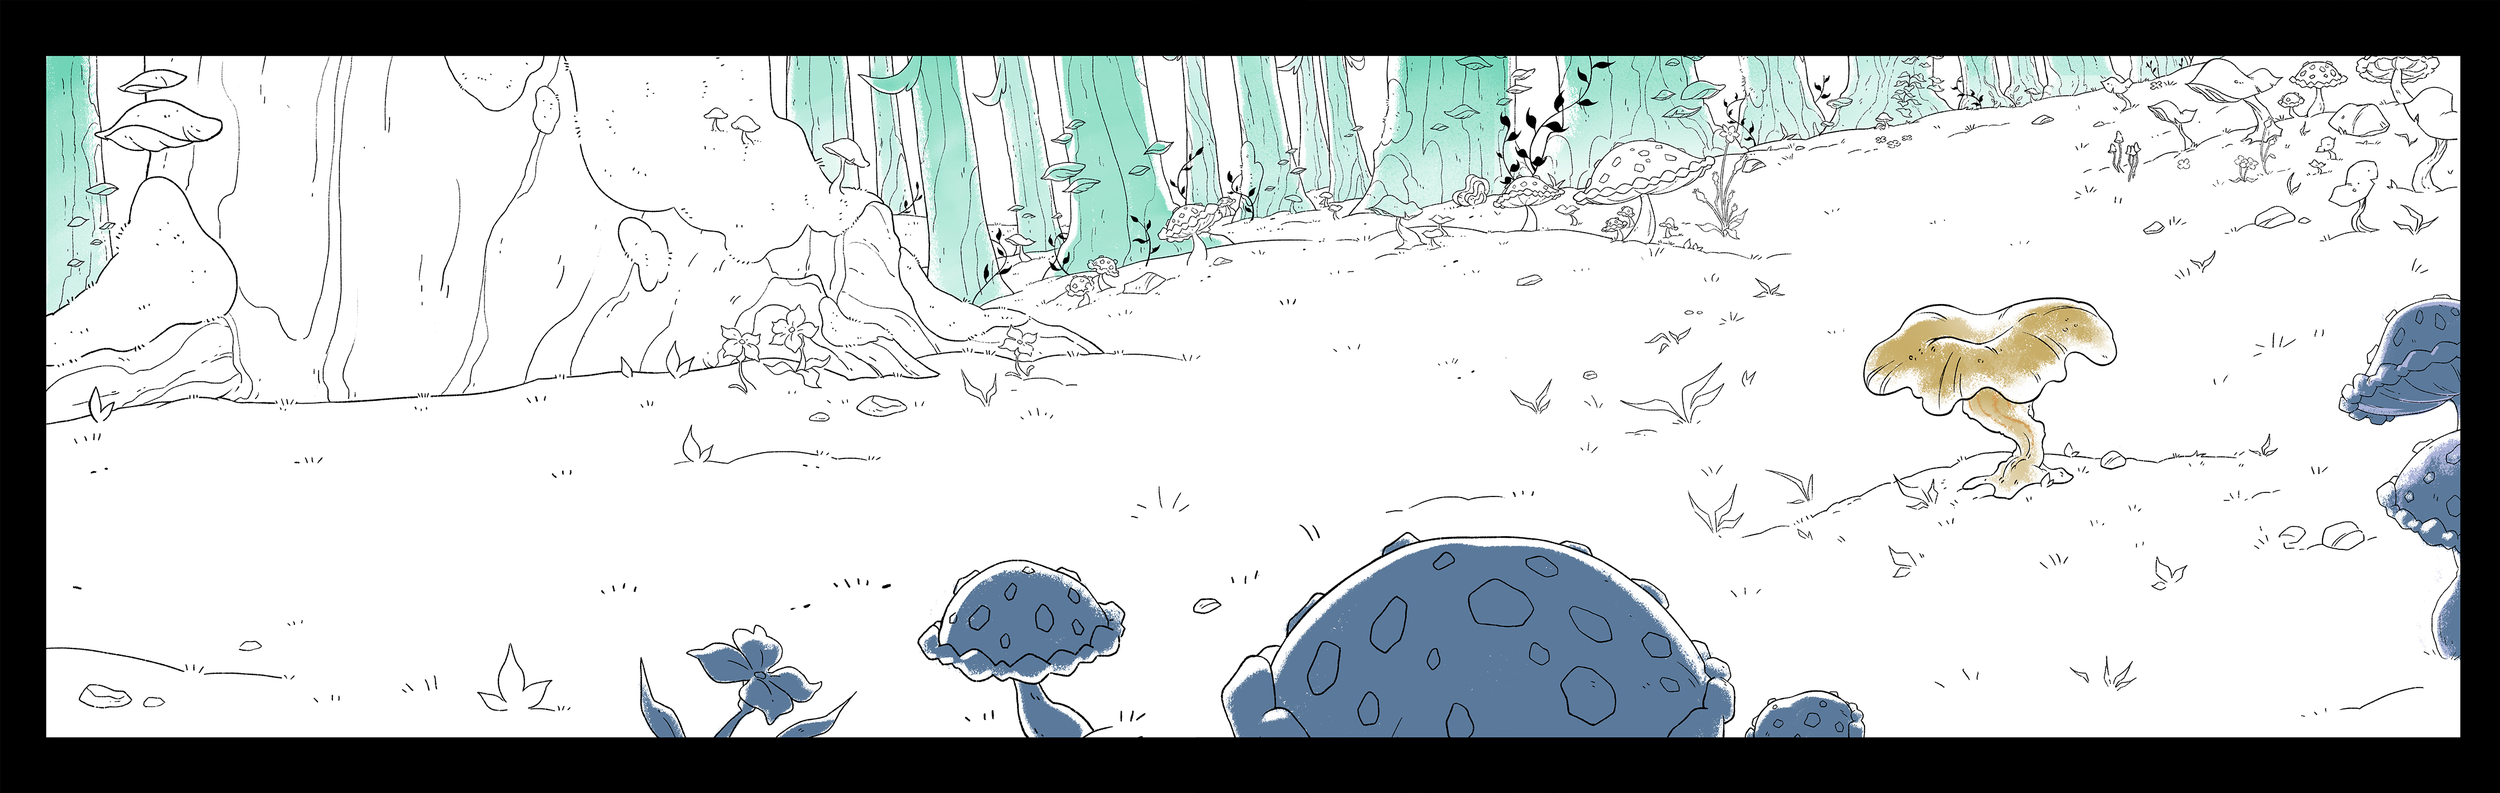 HG_12_FOREST_Closeup_BabyFight_PAN_Inks_02.png